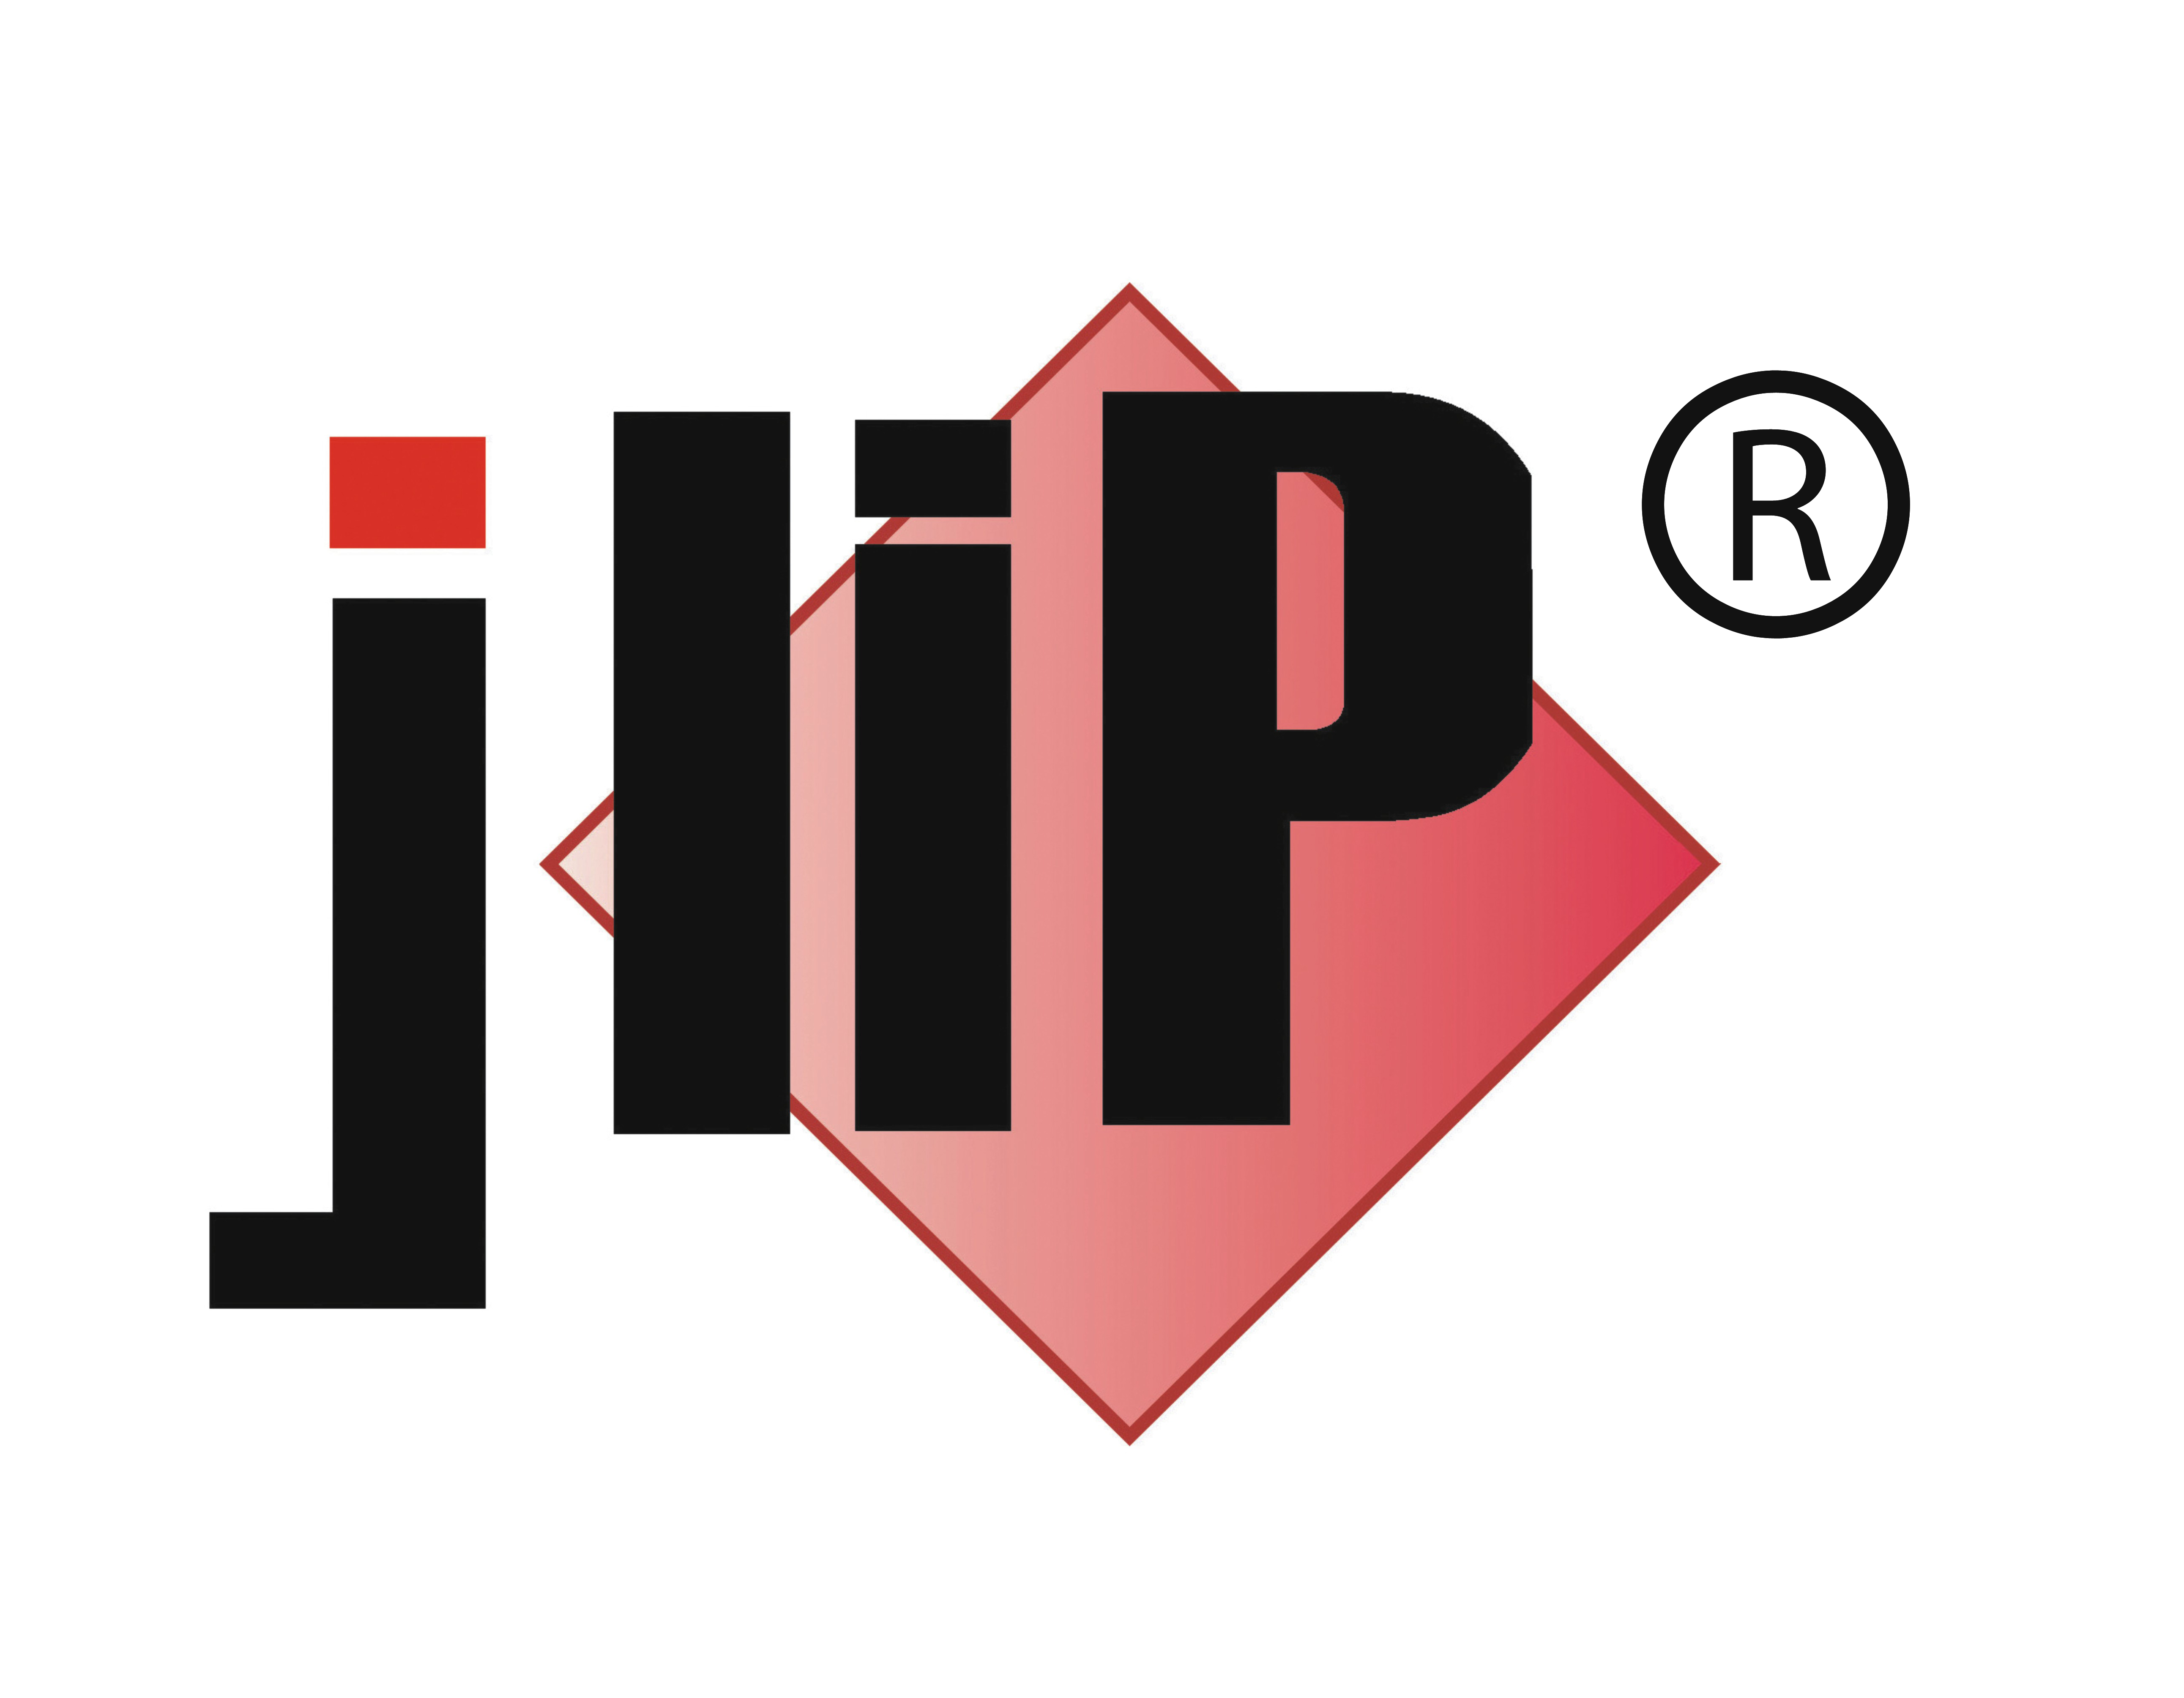 GUANGDONG JLIP HOLDINGS LIMITED